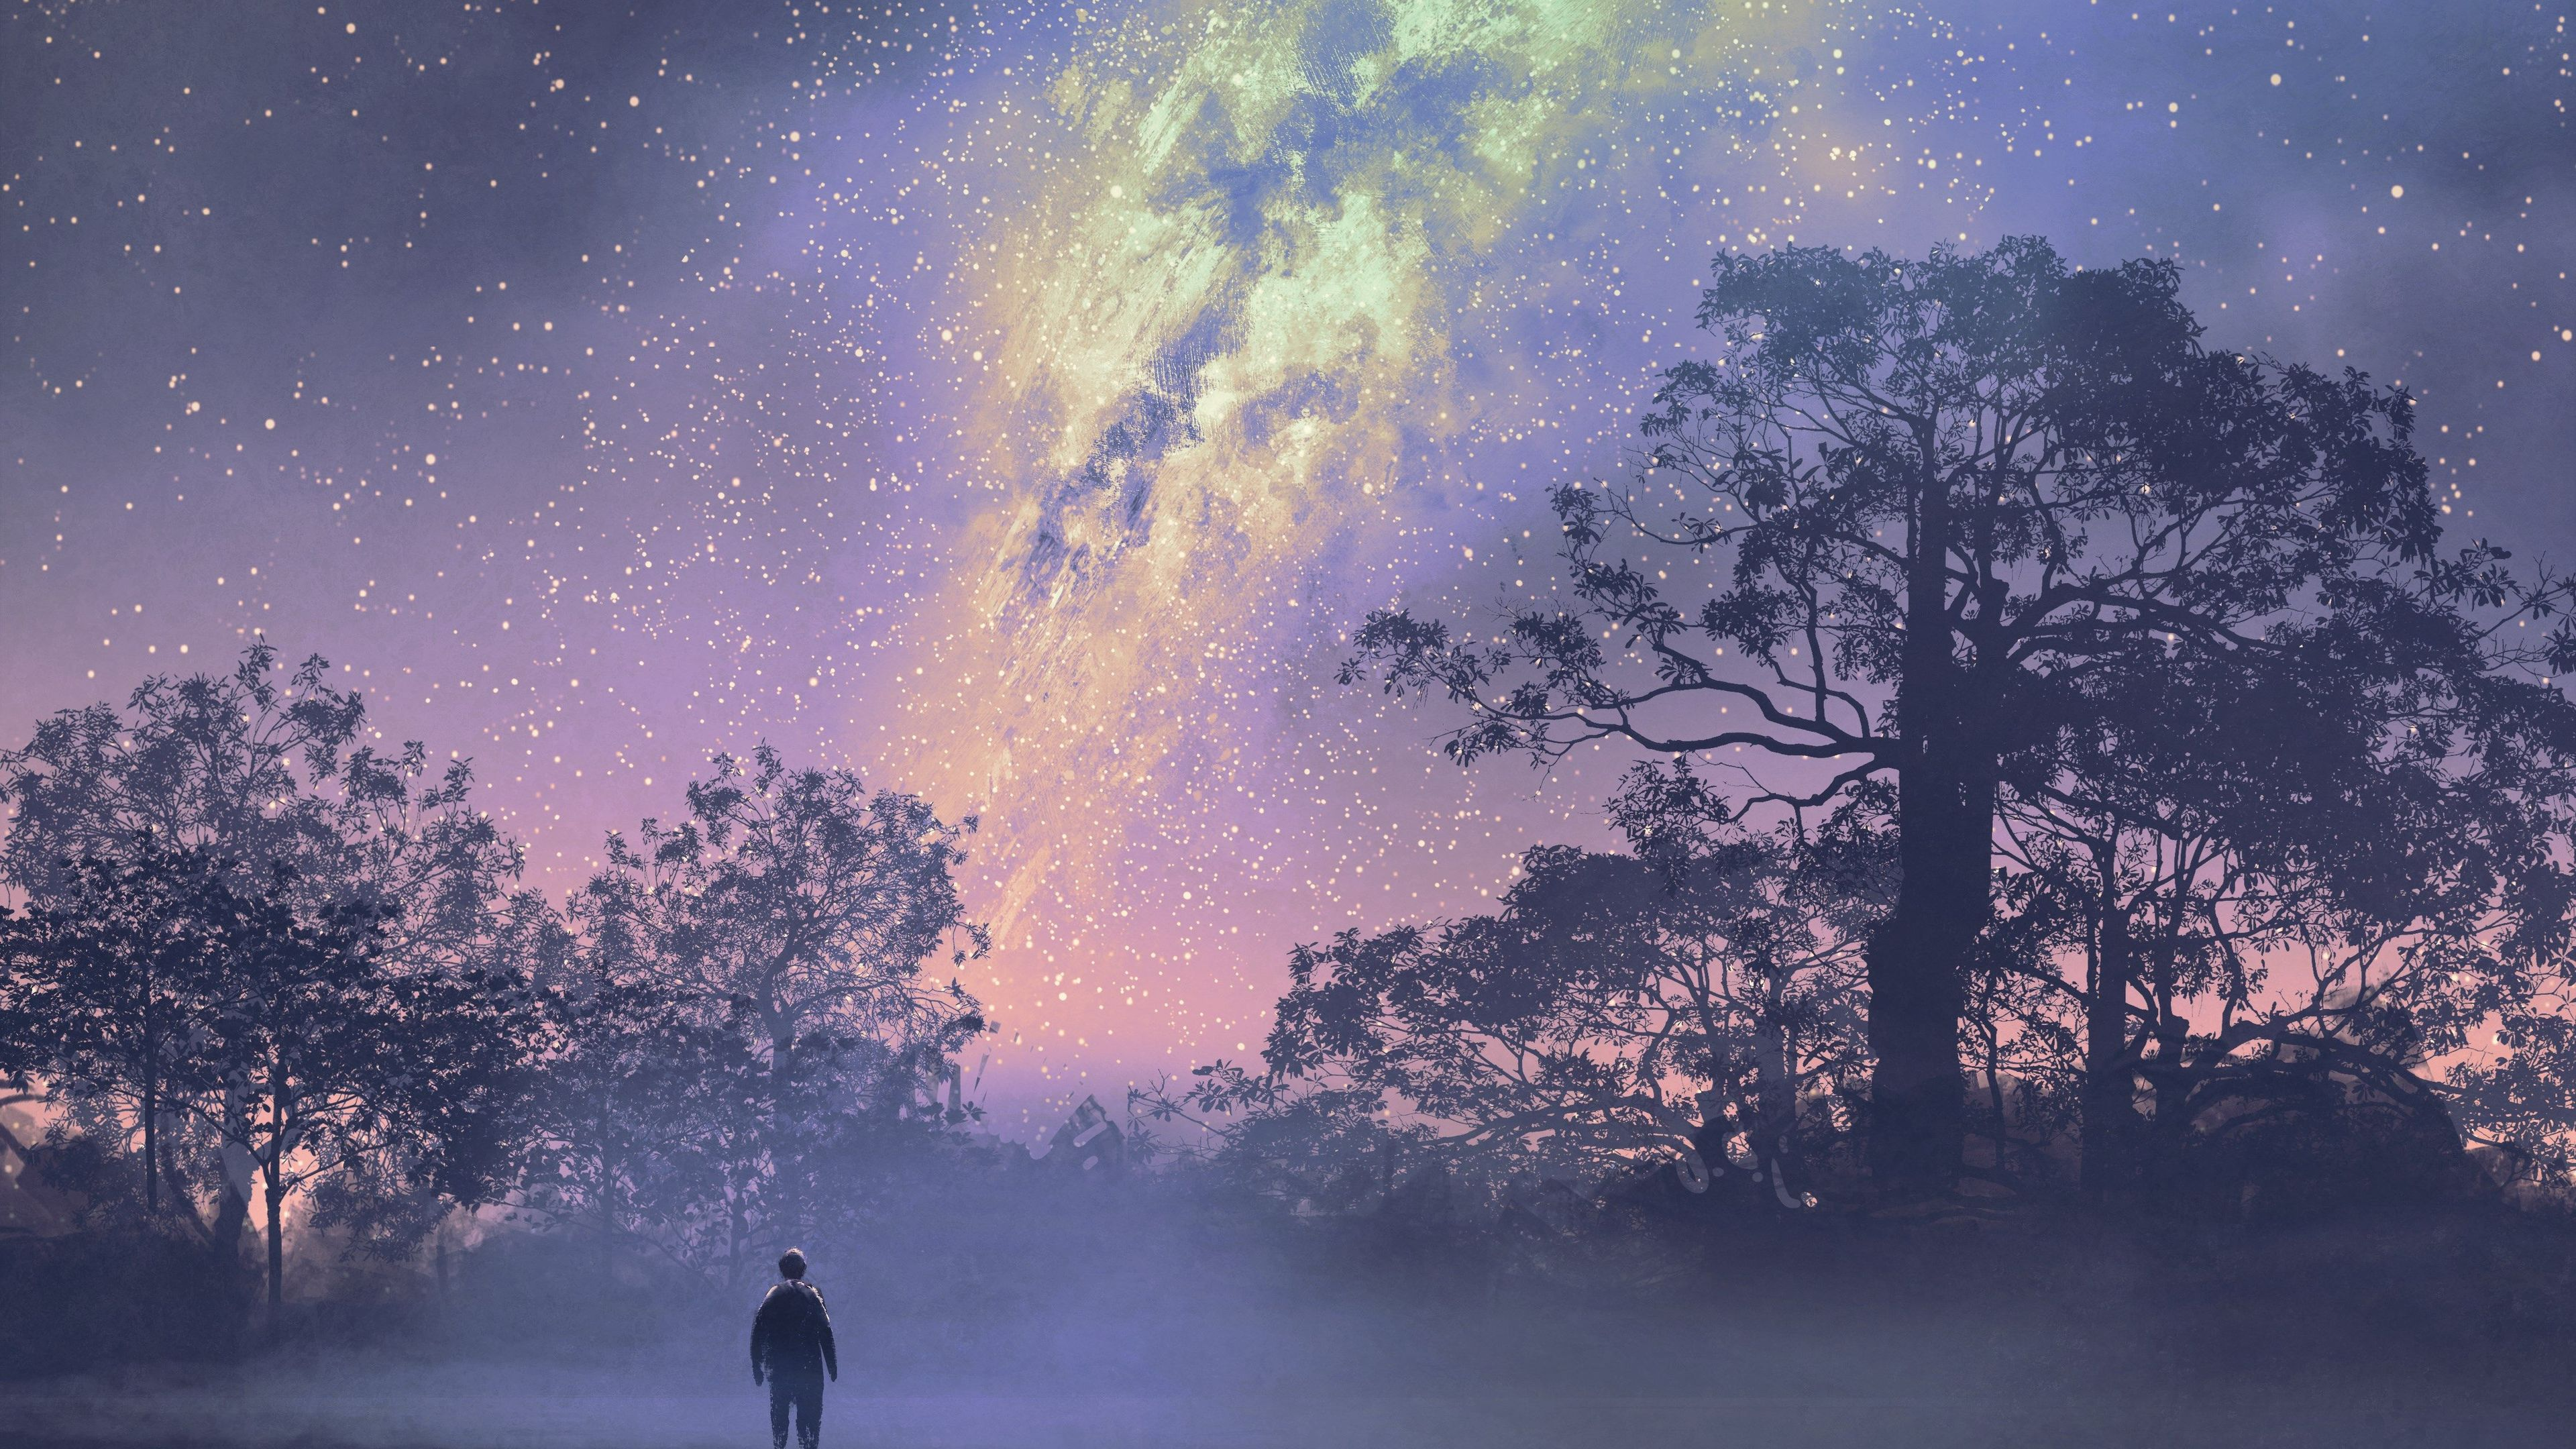 conversations with god book 4 cover 4k 1540754646 - Conversations With God Book 4 Cover 4k - trees wallpapers, stars wallpapers, hd-wallpapers, digital art wallpapers, constellations wallpapers, artwork wallpapers, artist wallpapers, 4k-wallpapers